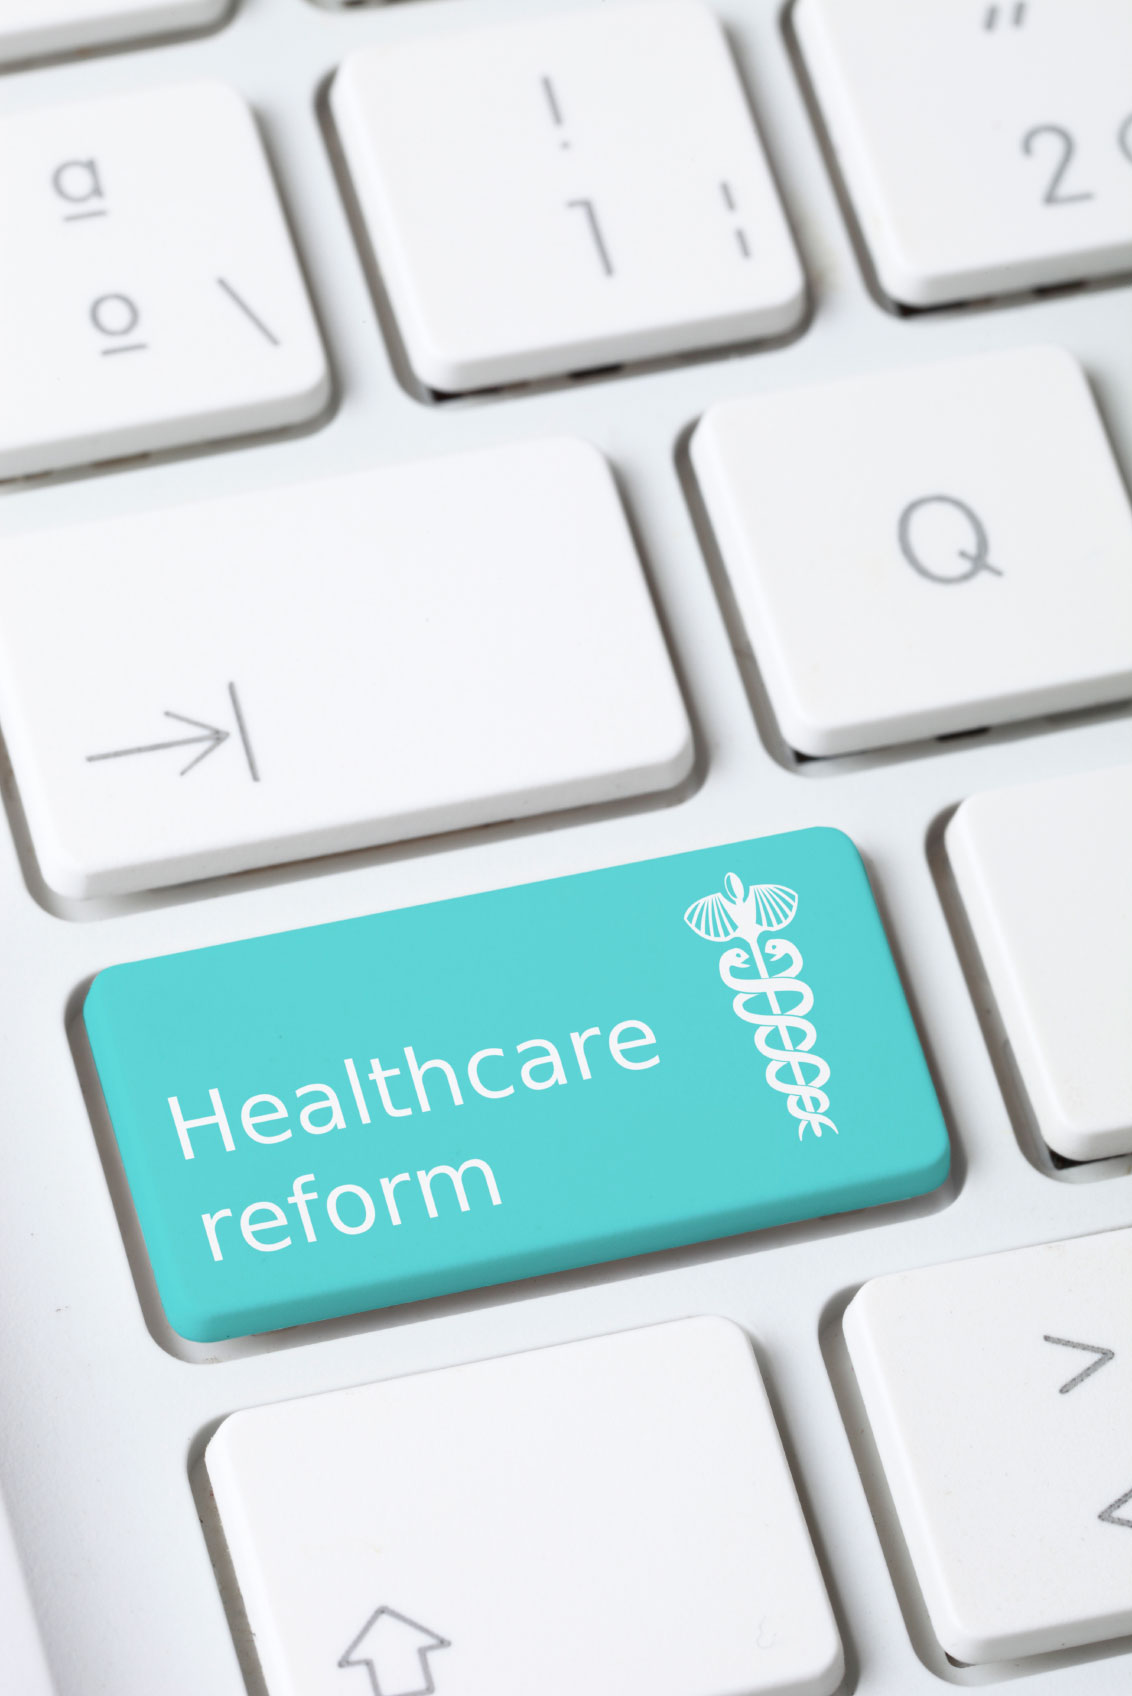 health care reform The economist offers authoritative insight and opinion on international news, politics, business, finance, science, technology and the connections between them.